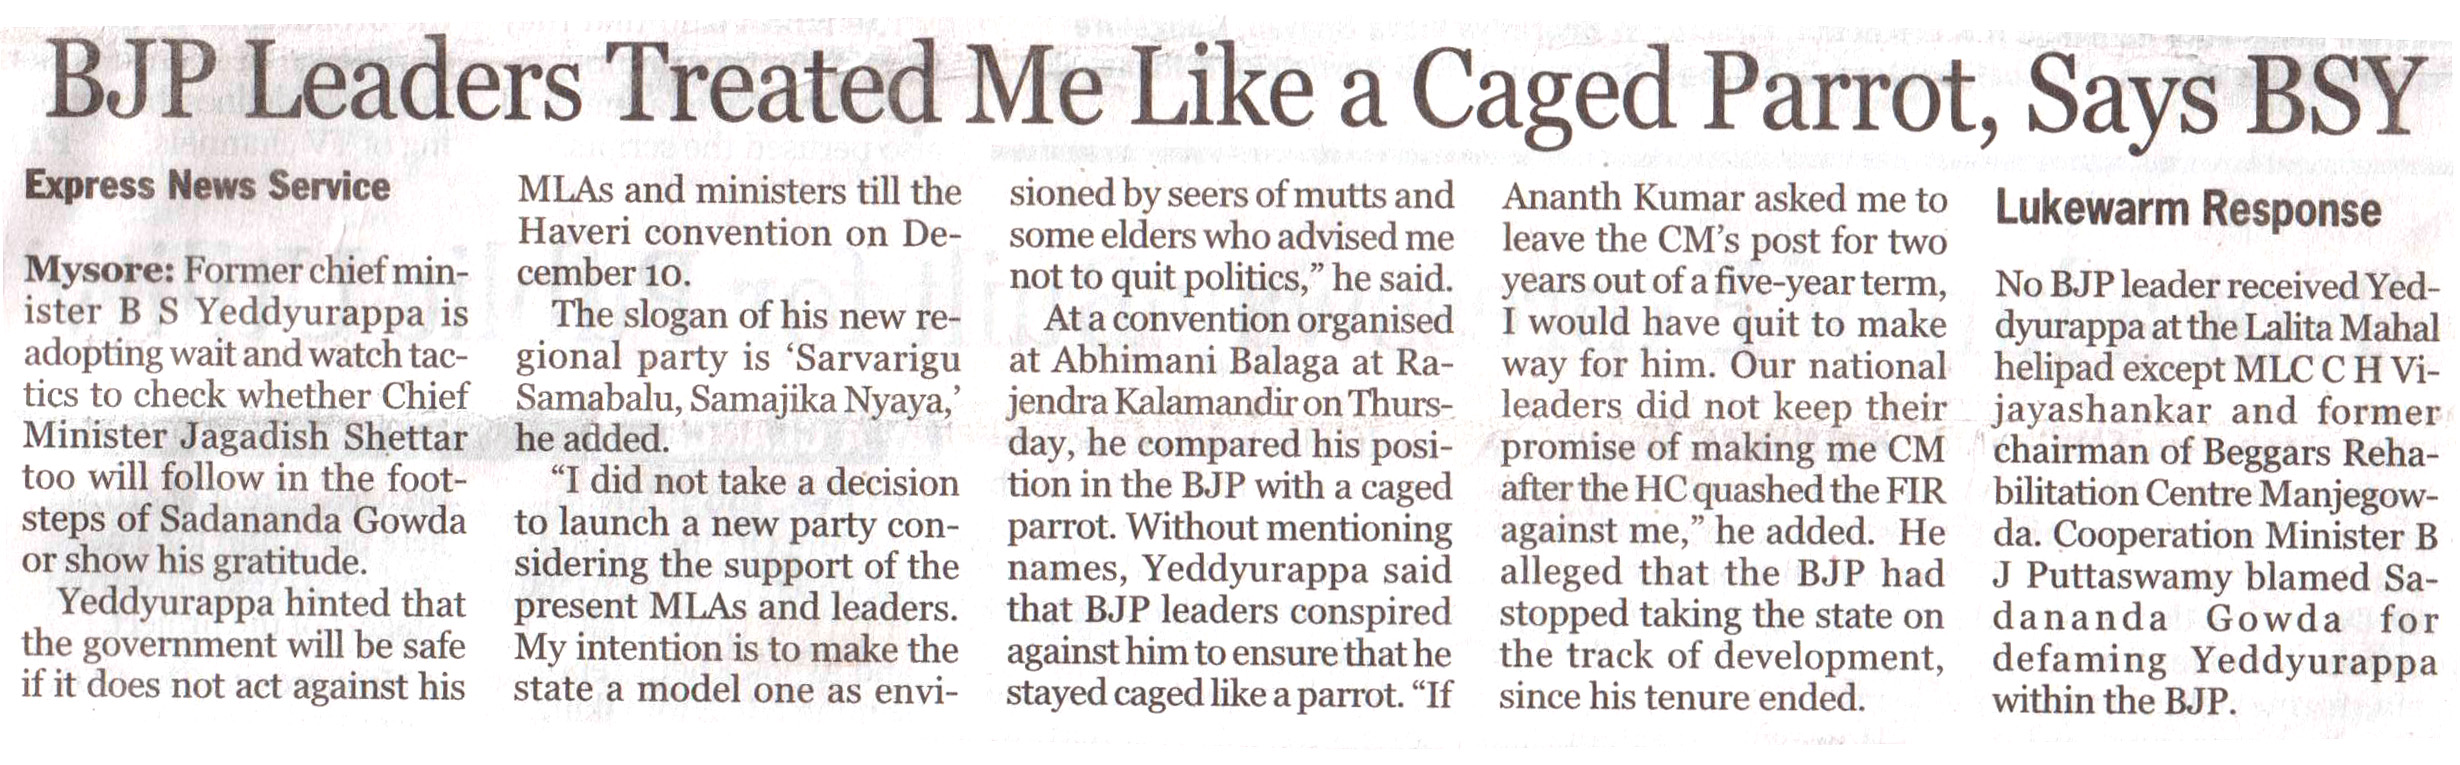 BJP Leaders Treated Me Like a Caged Parrot, Says BSY